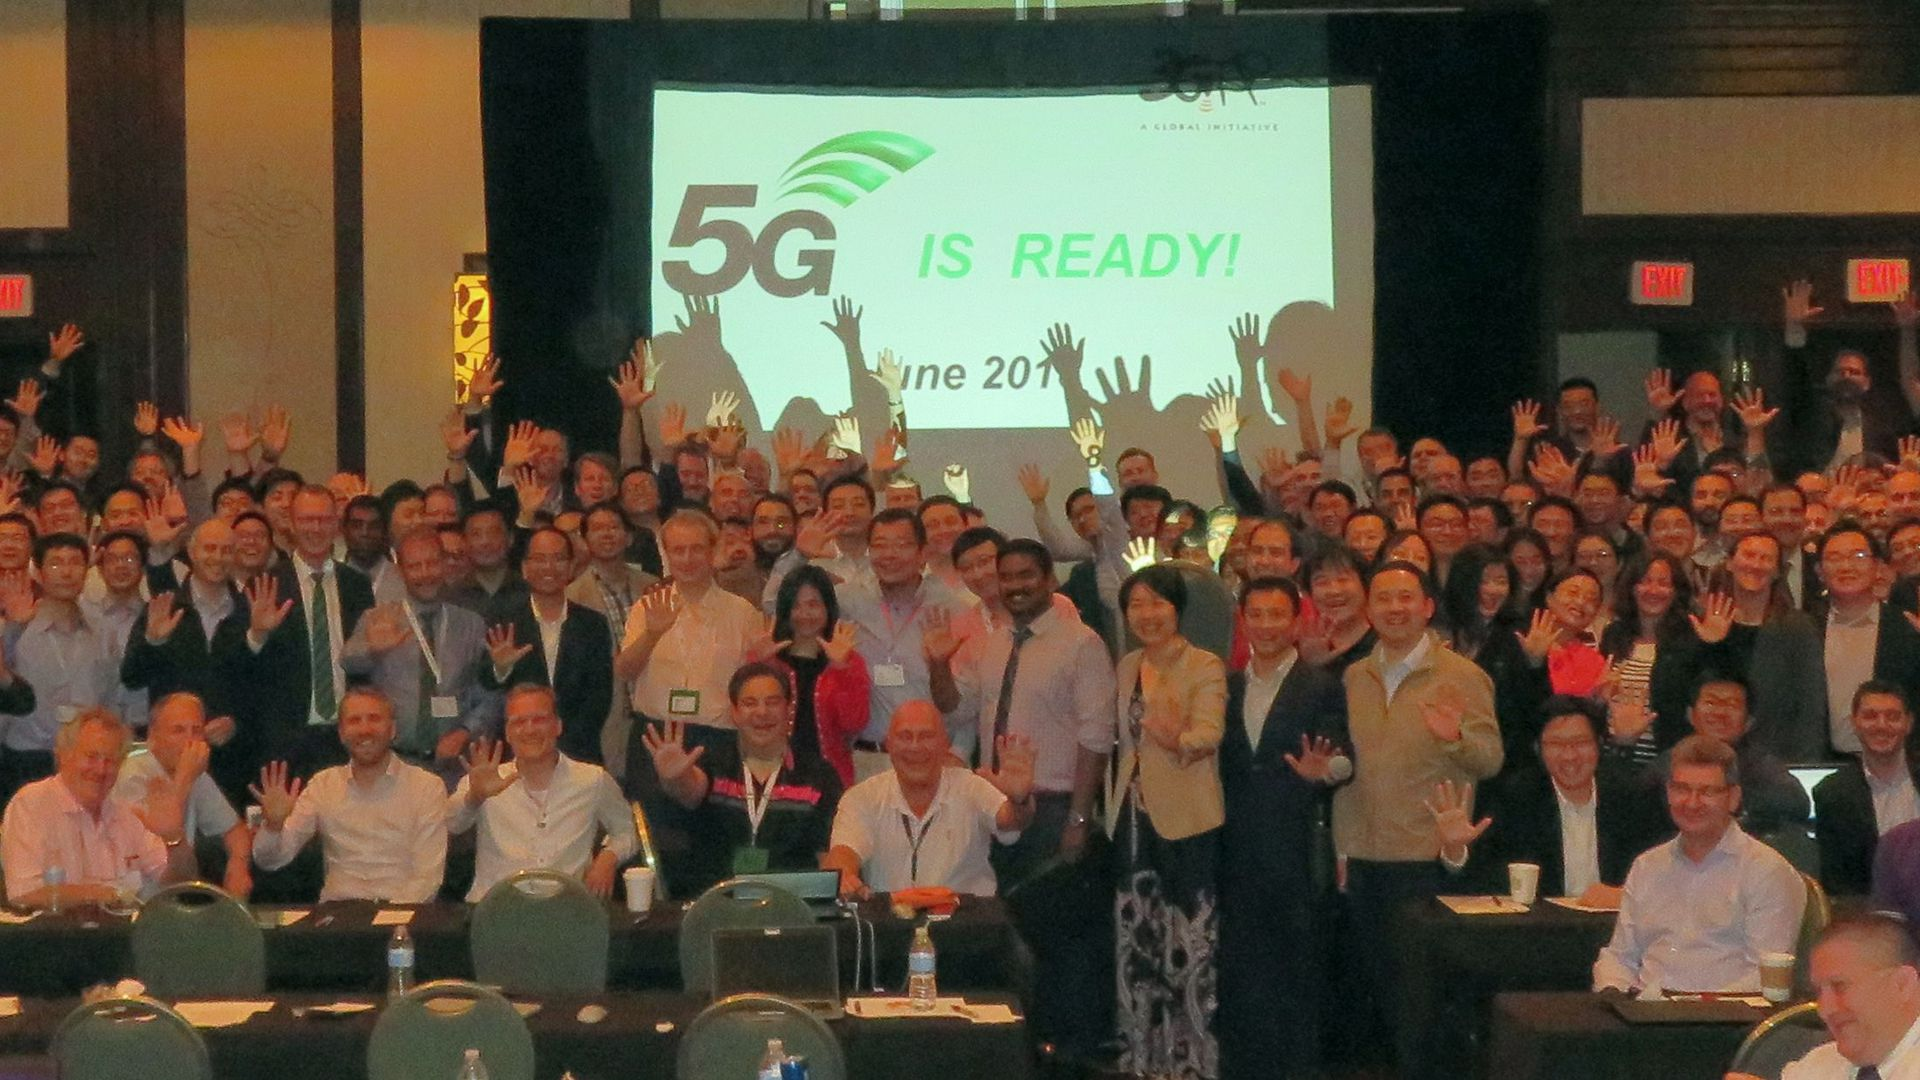 Group photo from last week's 5G meeting in La Jolla, Calif.